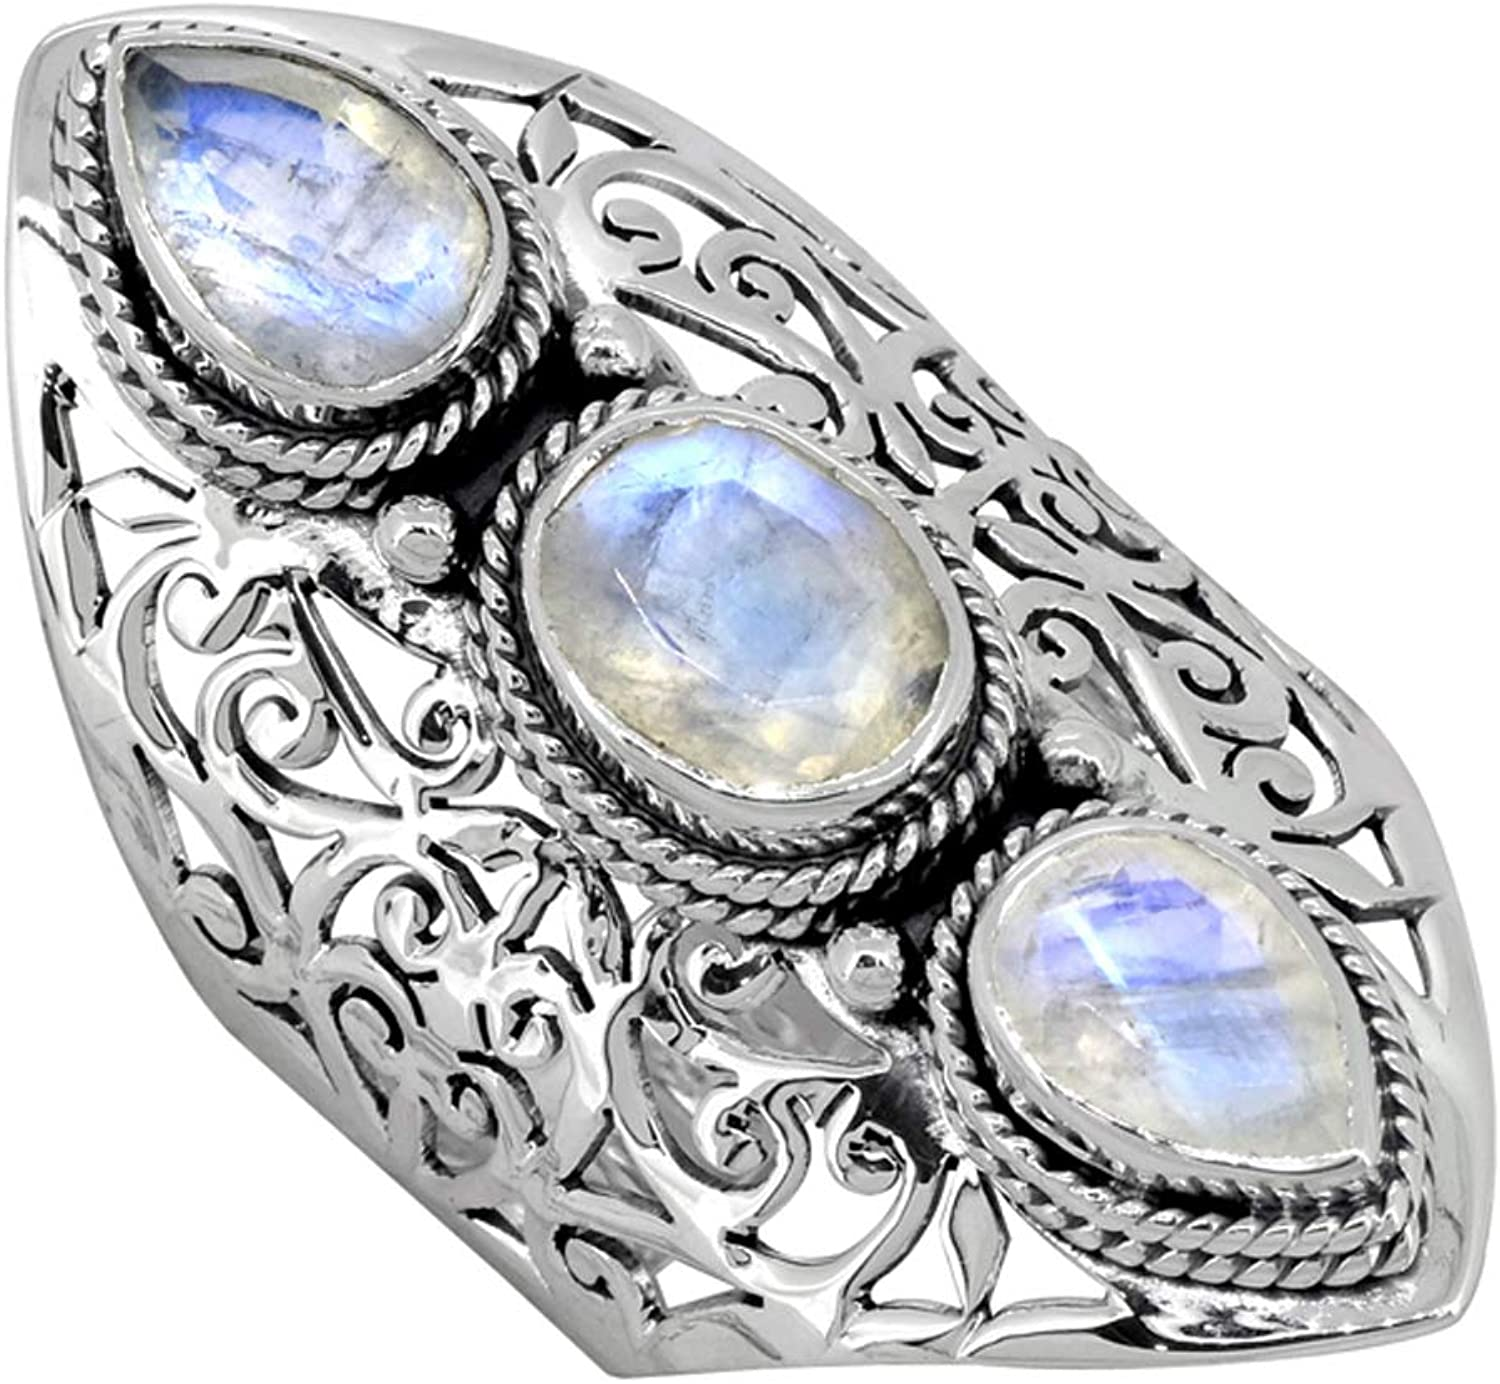 YoTreasure Max 89% OFF Moonstone Solid Max 51% OFF 925 Sterling Stone Jewe Ring 3 Silver